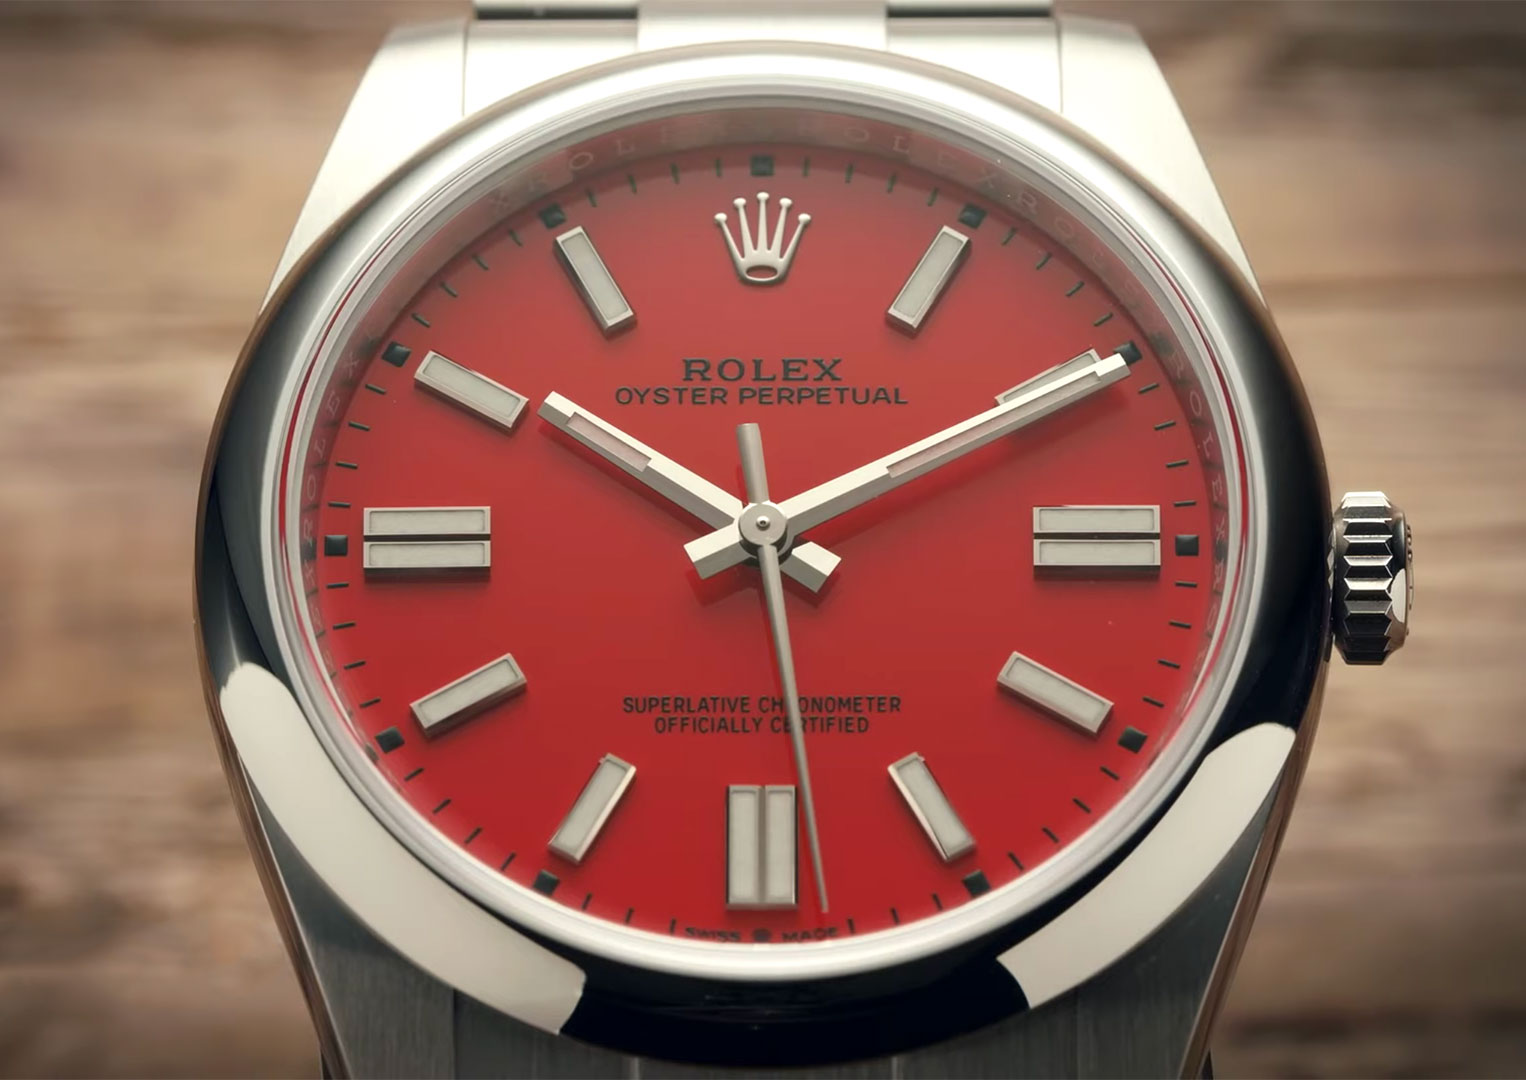 The 2020 Rolex Oyster Perpetual 41 starts at £4,700